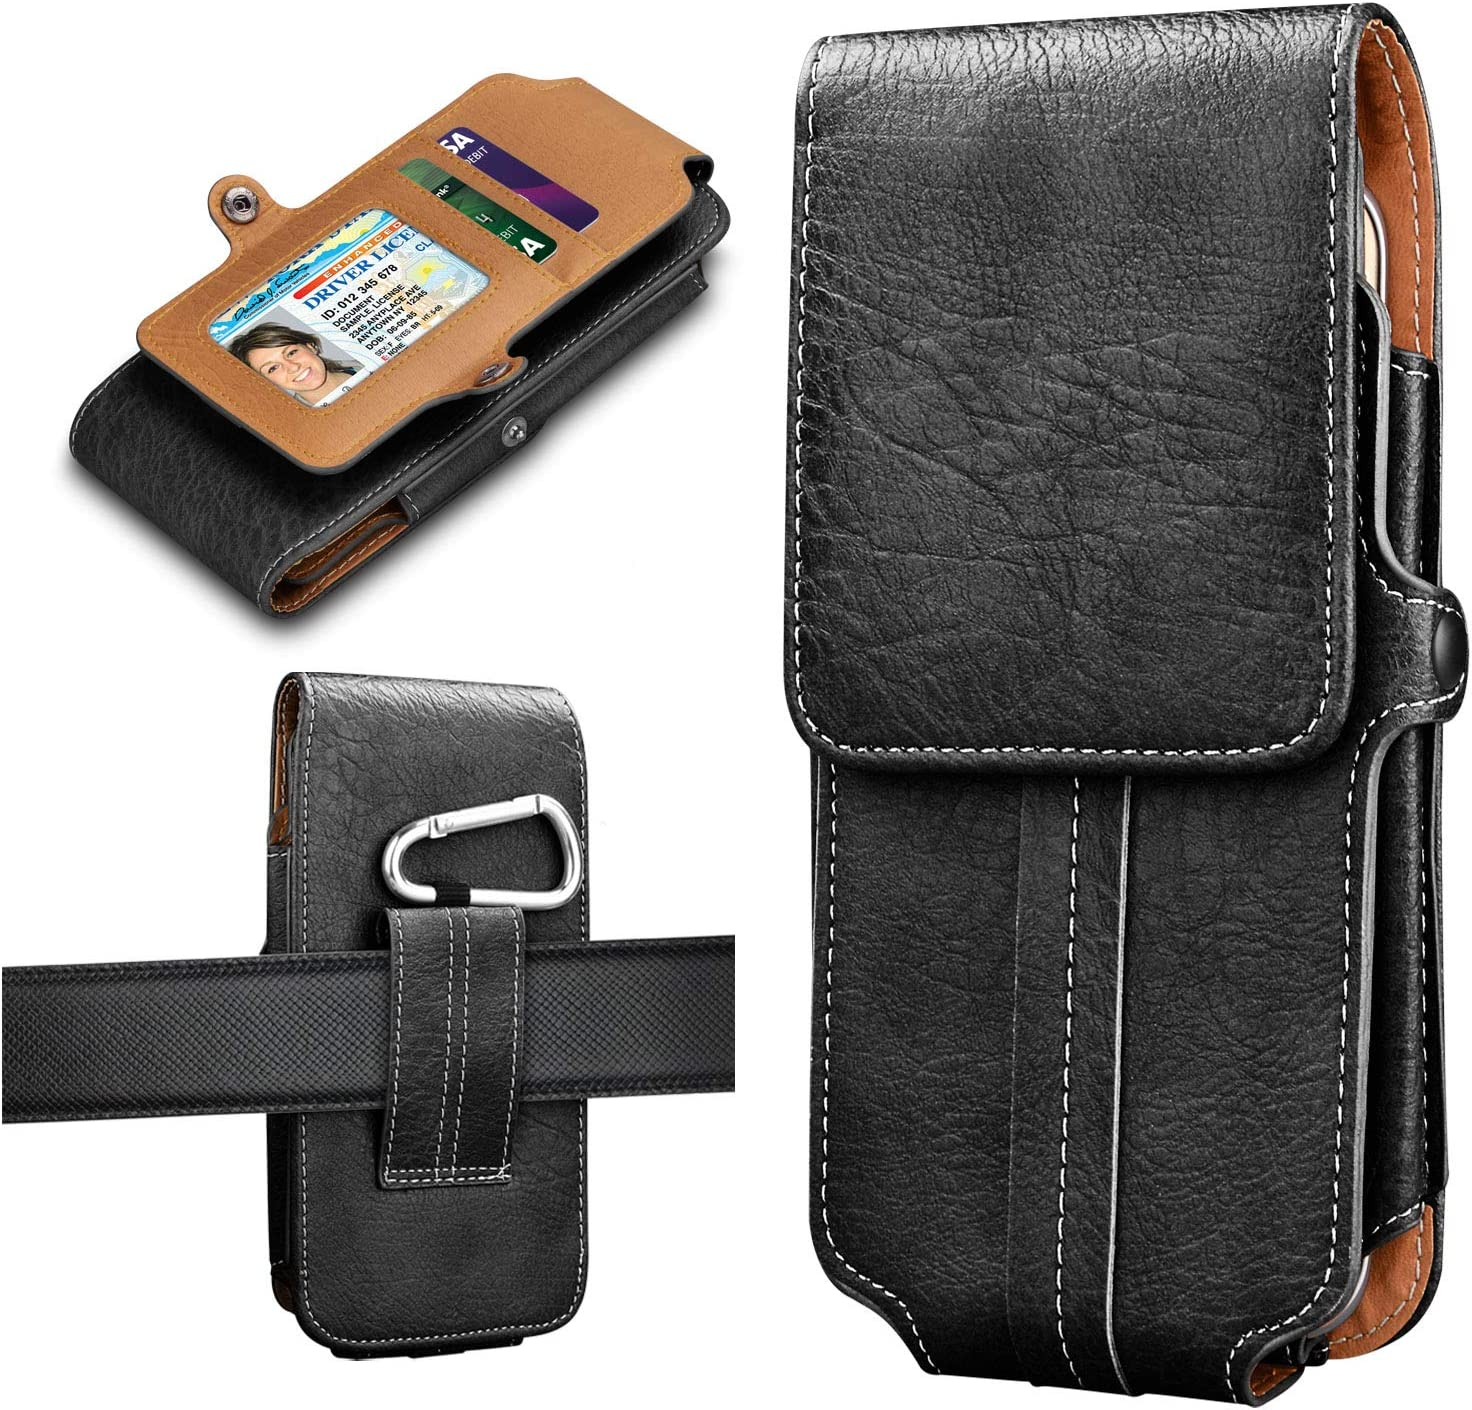 Tiflook Phone Holster for iPhone 12 11 XR Samsung Galaxy S21 S20 S10 4G S9 S8 A10e J7 LG K31 Aristo 5 K40 K30 G8 G7 G6 Moto G7 Play E6 X4 Leather Belt Clip Case Cell Phone Pouch with Card Holder,Black